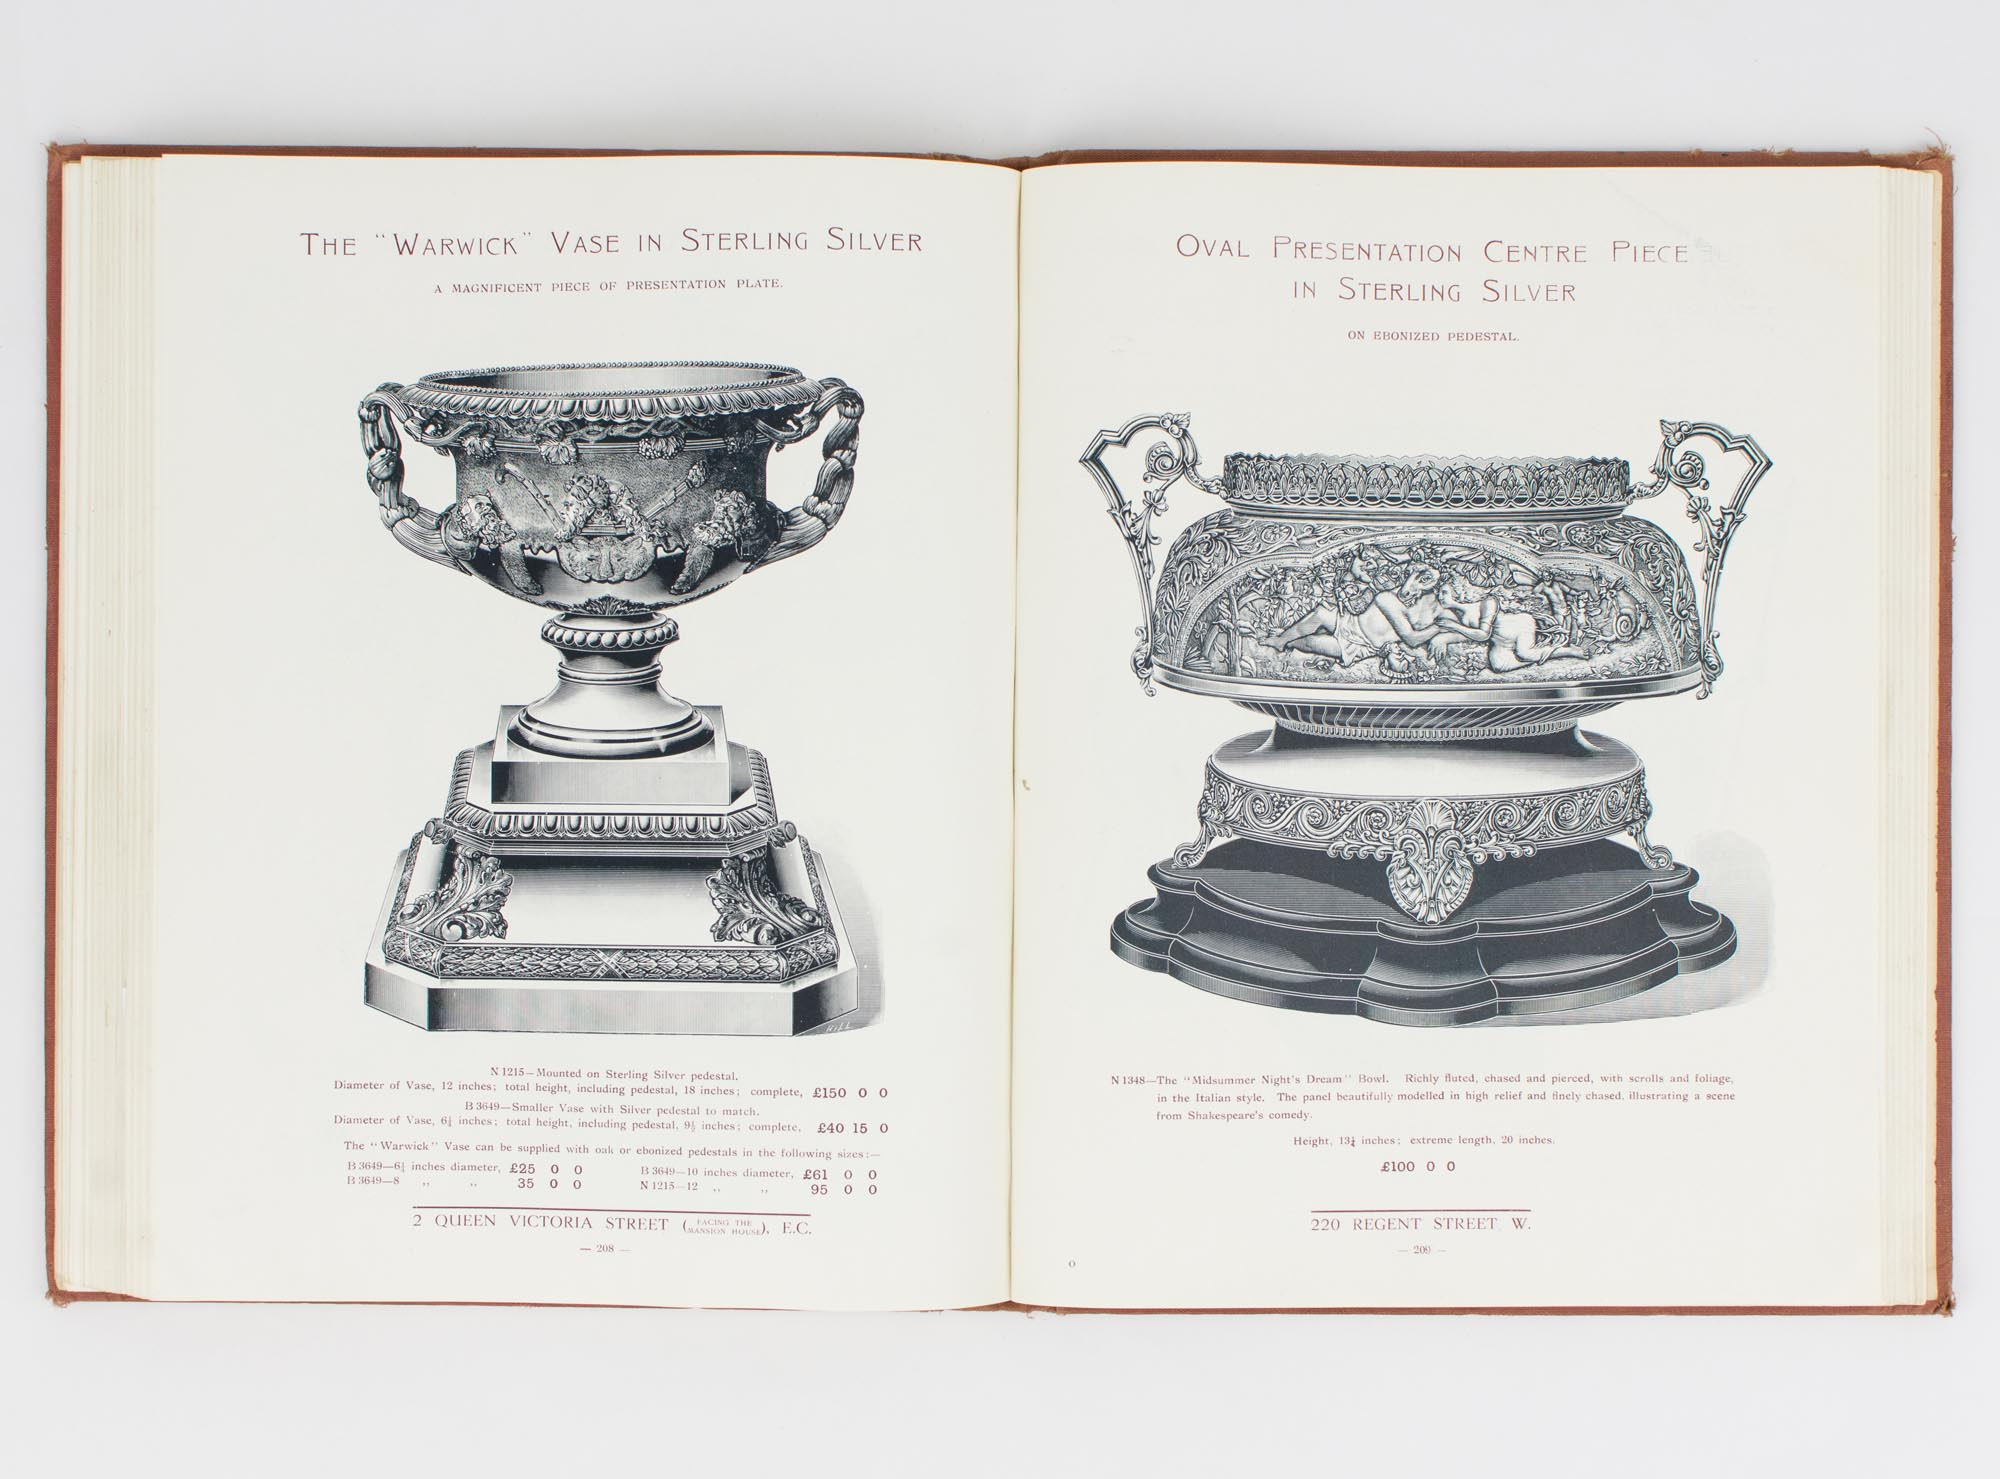 Mappin & Webb 1908 Ltd. Manufacturing Goldsmiths and